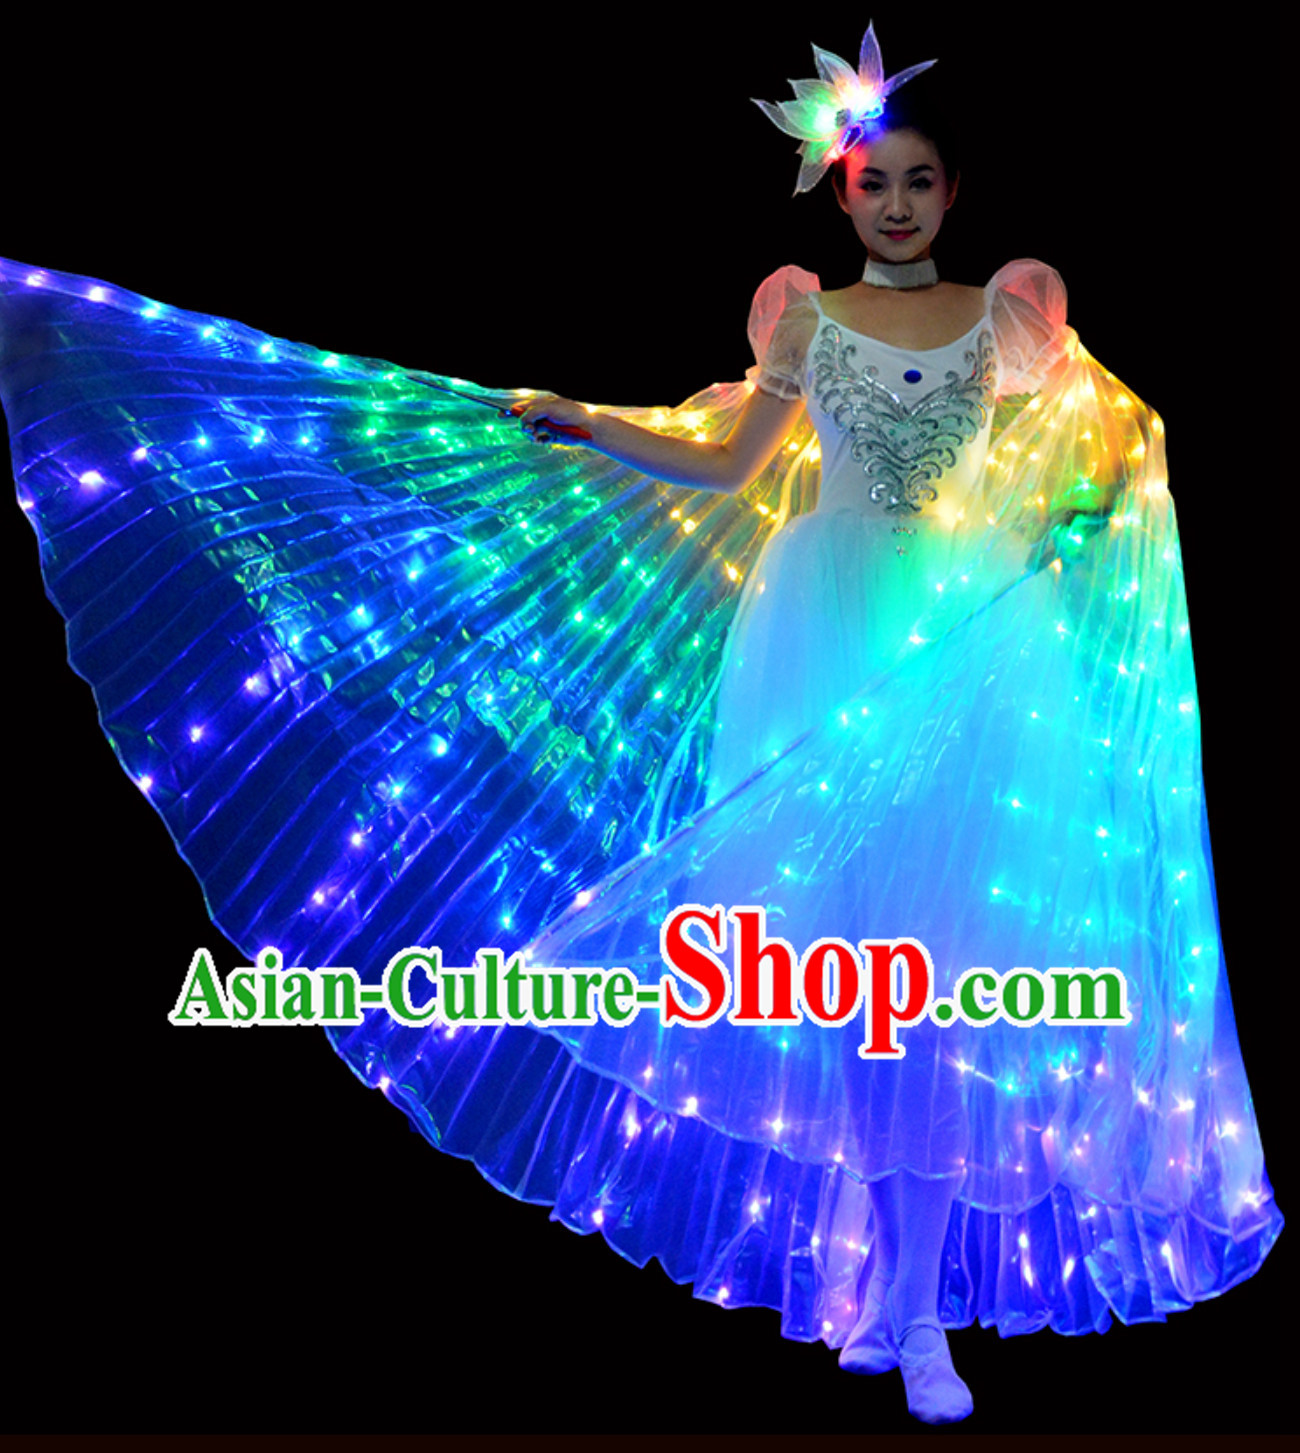 LED Lights Luminous Giant Wings Butterfly Dance Costumes and Head Wear Complete Set